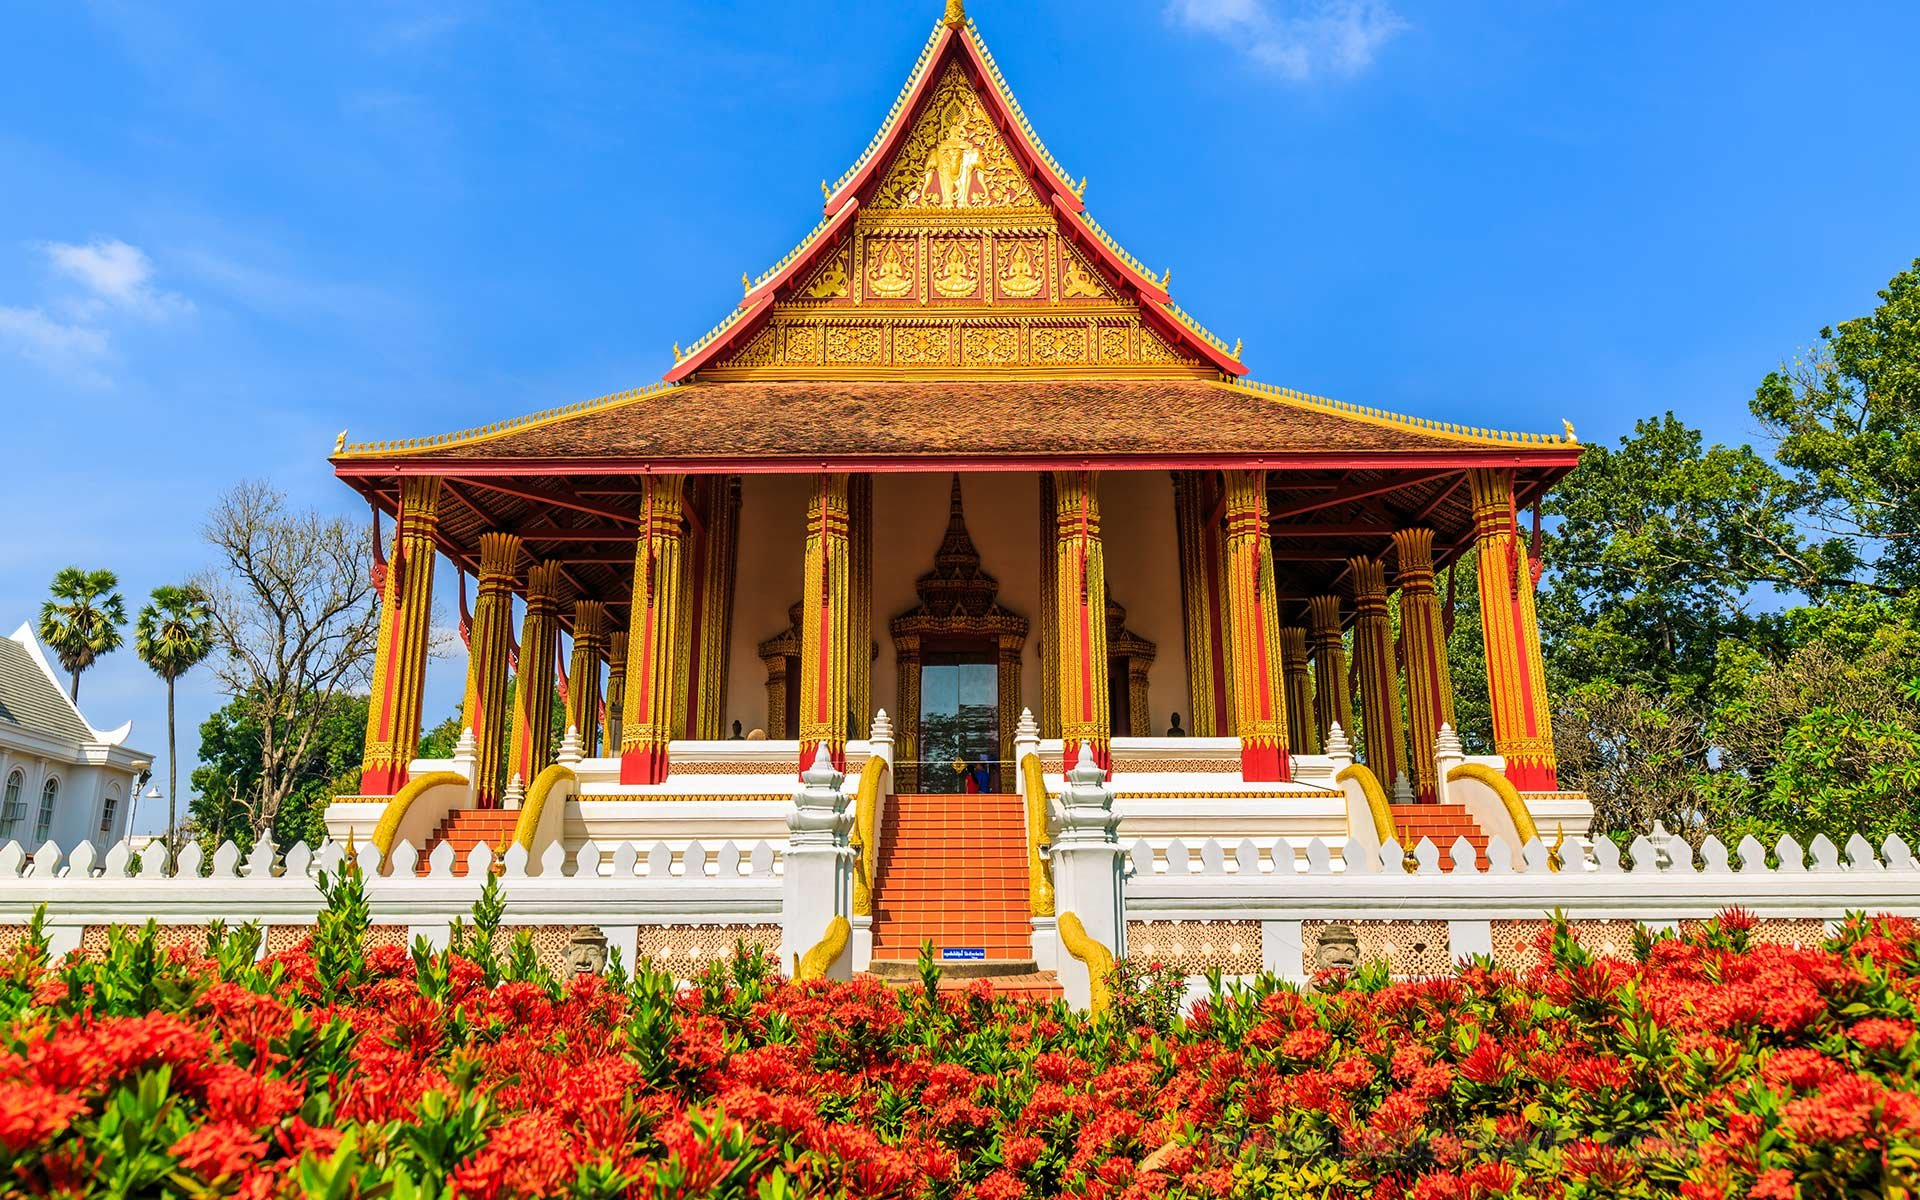 Heritage Luxury Journey (Laos & Vietnam) - 8 days